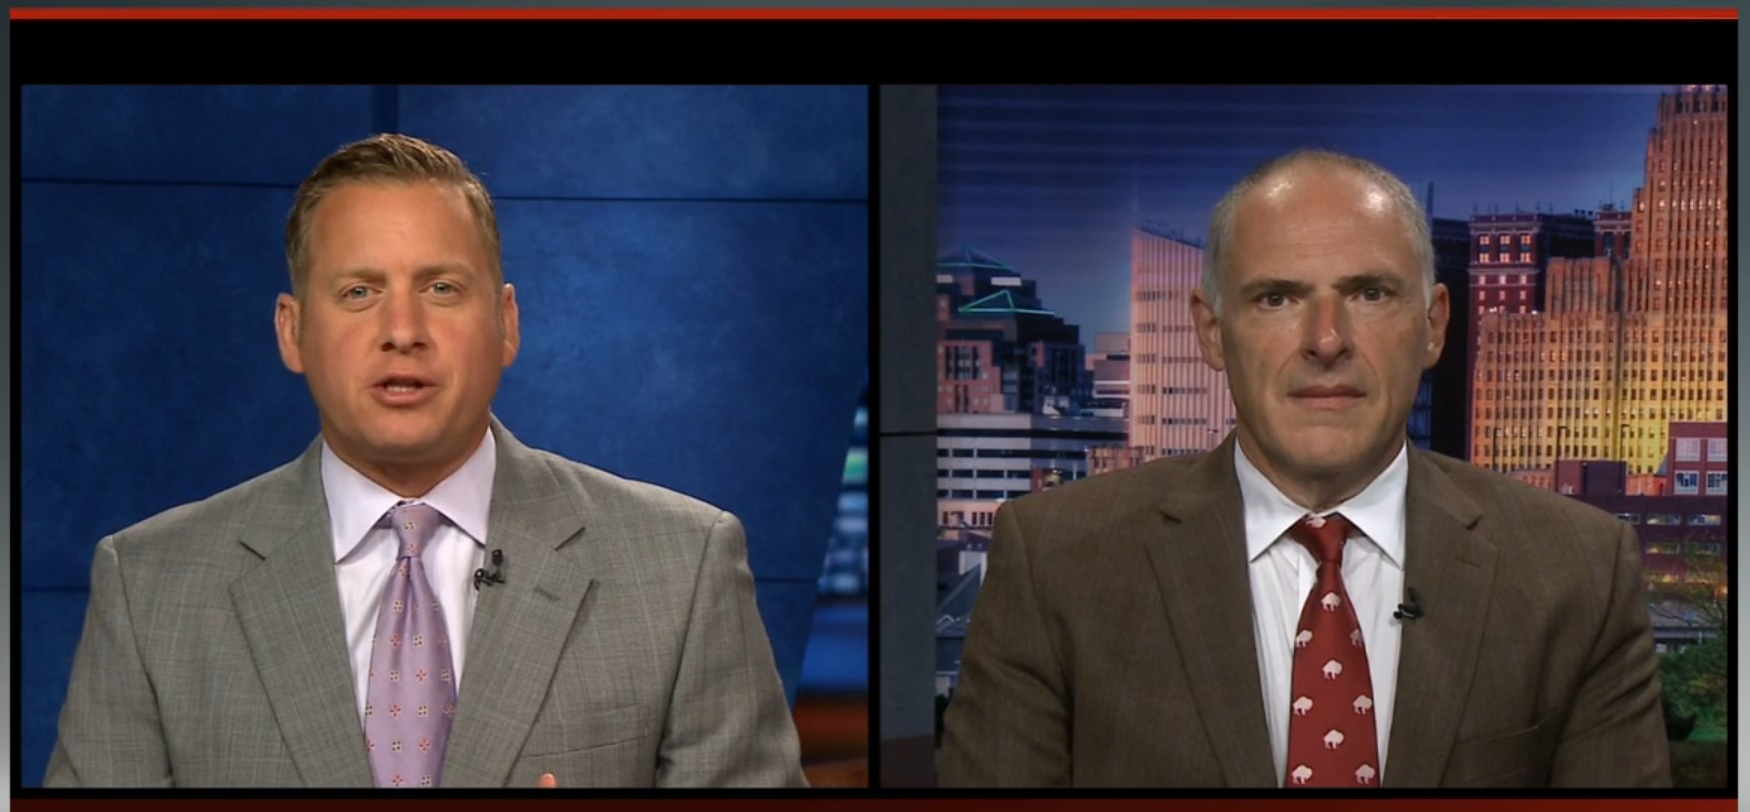 Vic Carucci joins Adam Begnini on WGRZ Ch. 2 each Tuesday.